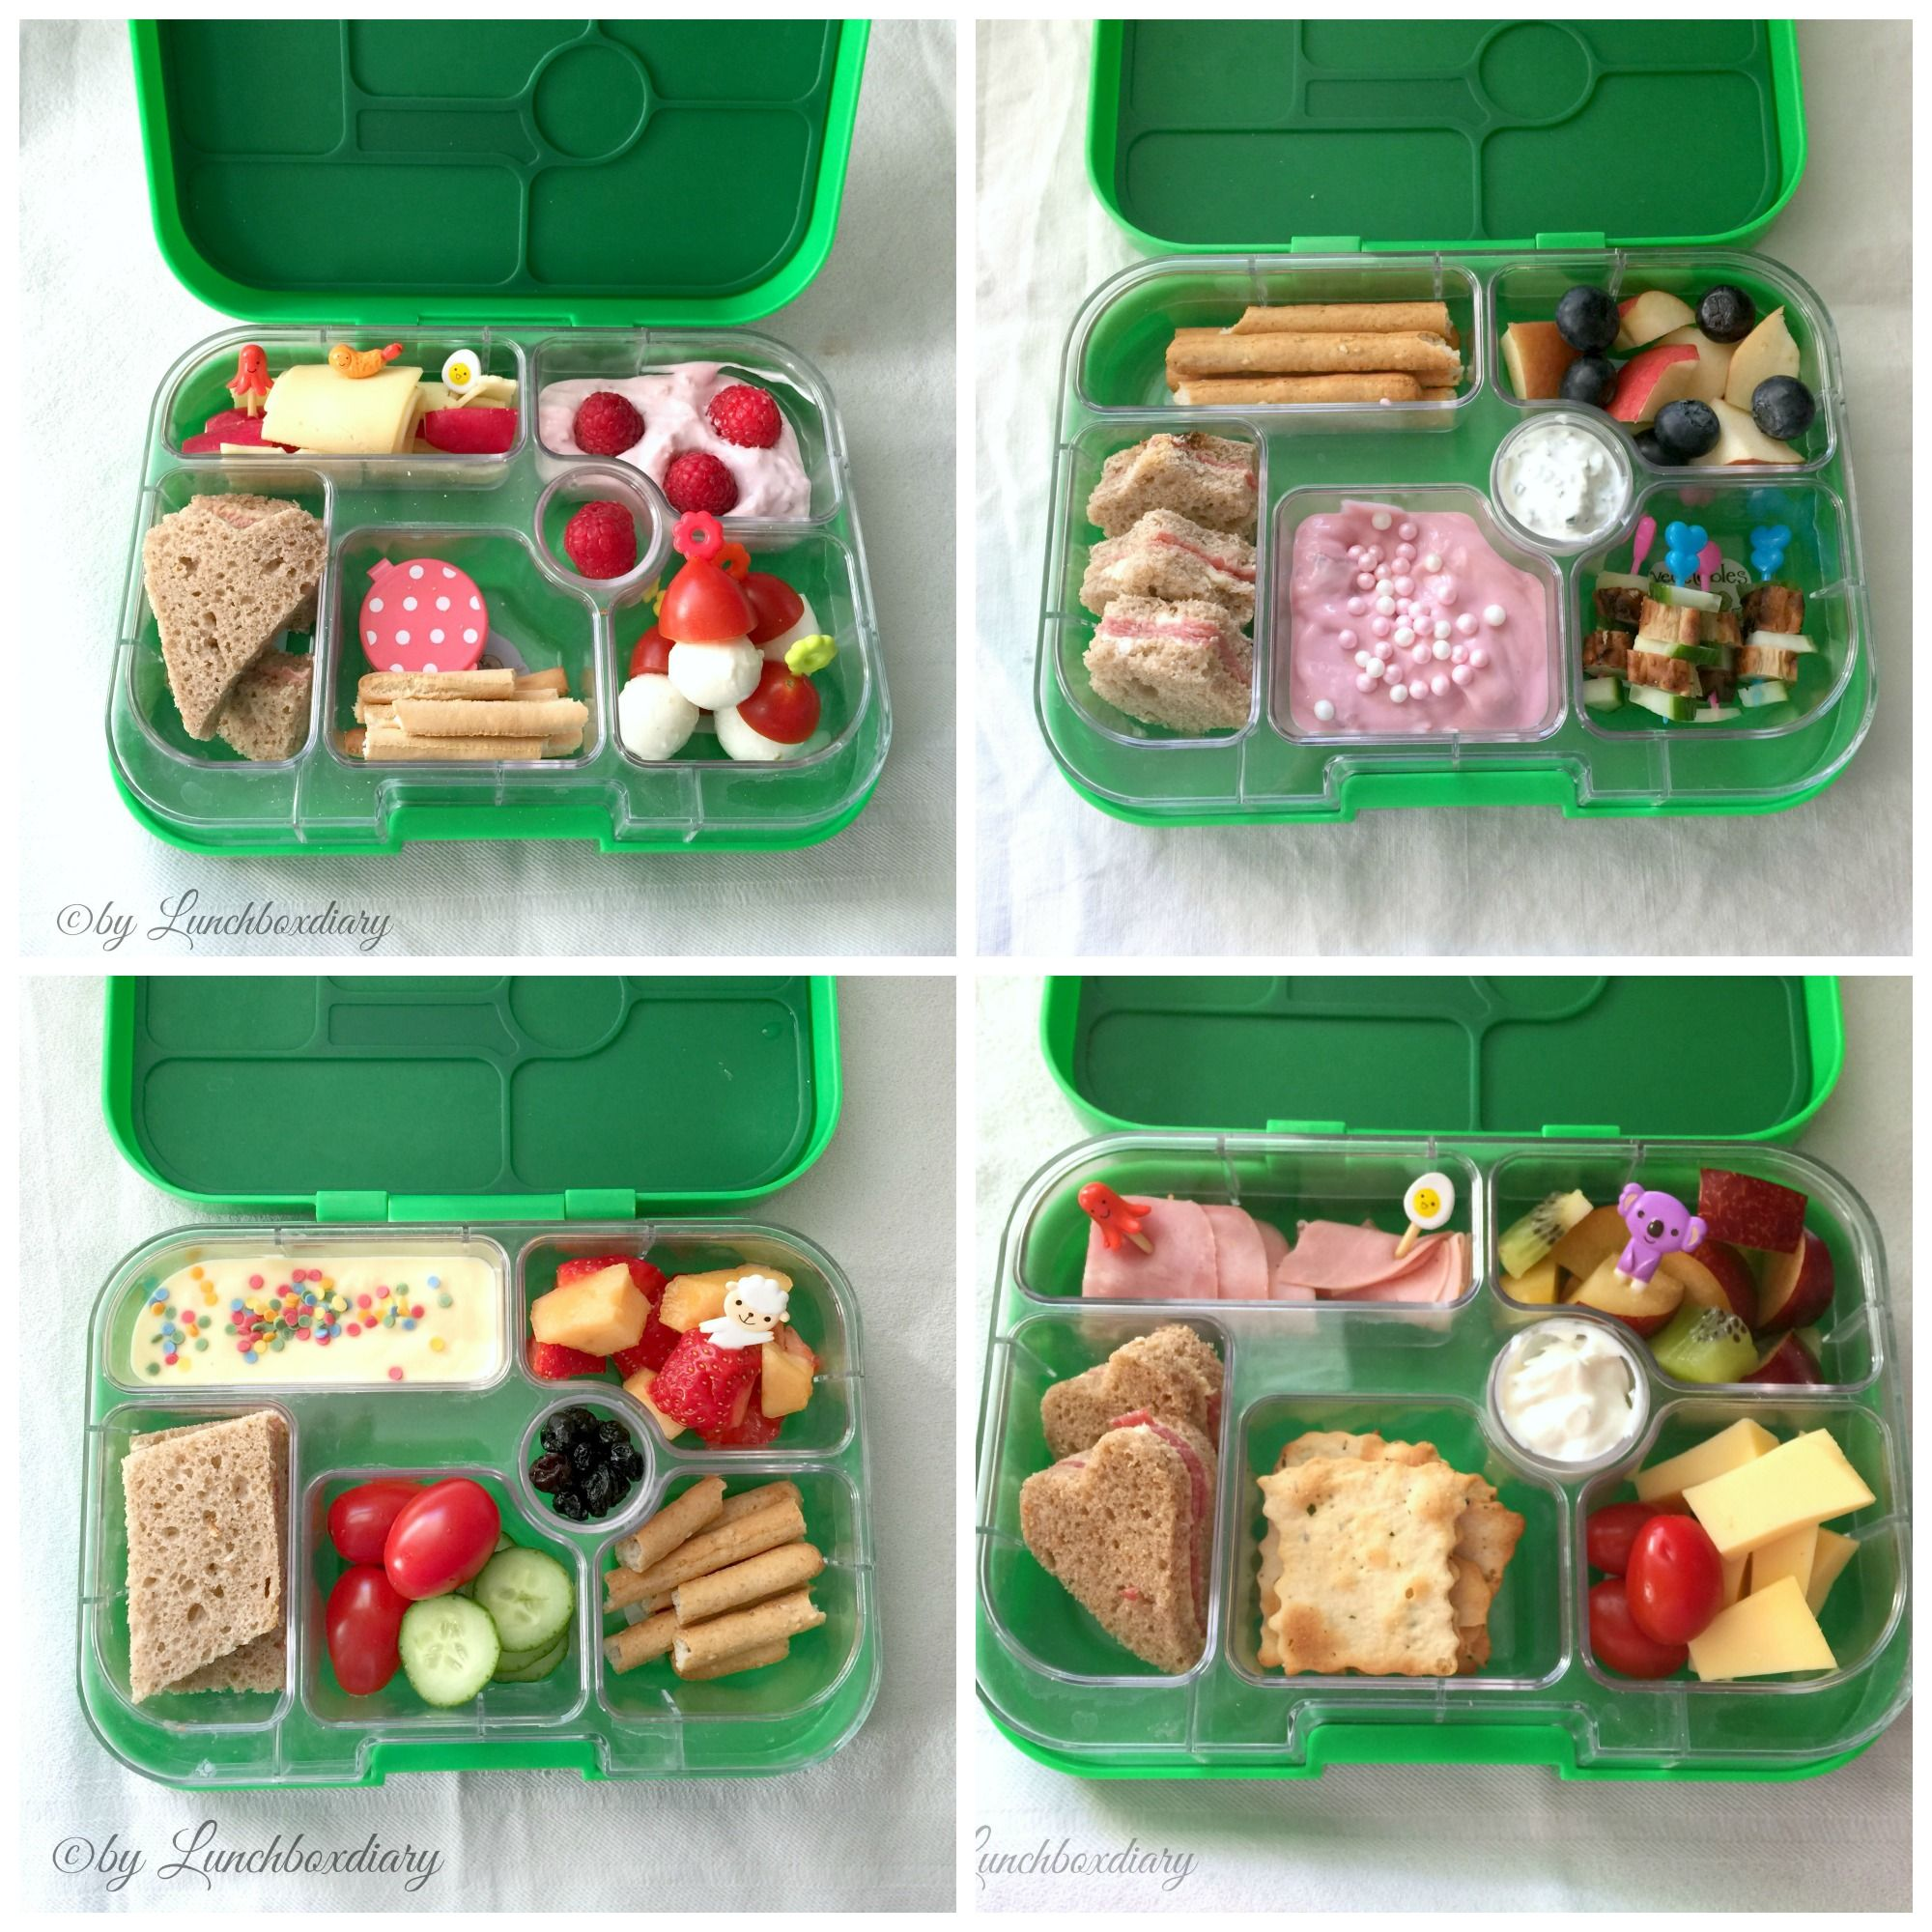 yumbox classic im test die lunchbox f r jeden tag via lunchboxinspiration. Black Bedroom Furniture Sets. Home Design Ideas